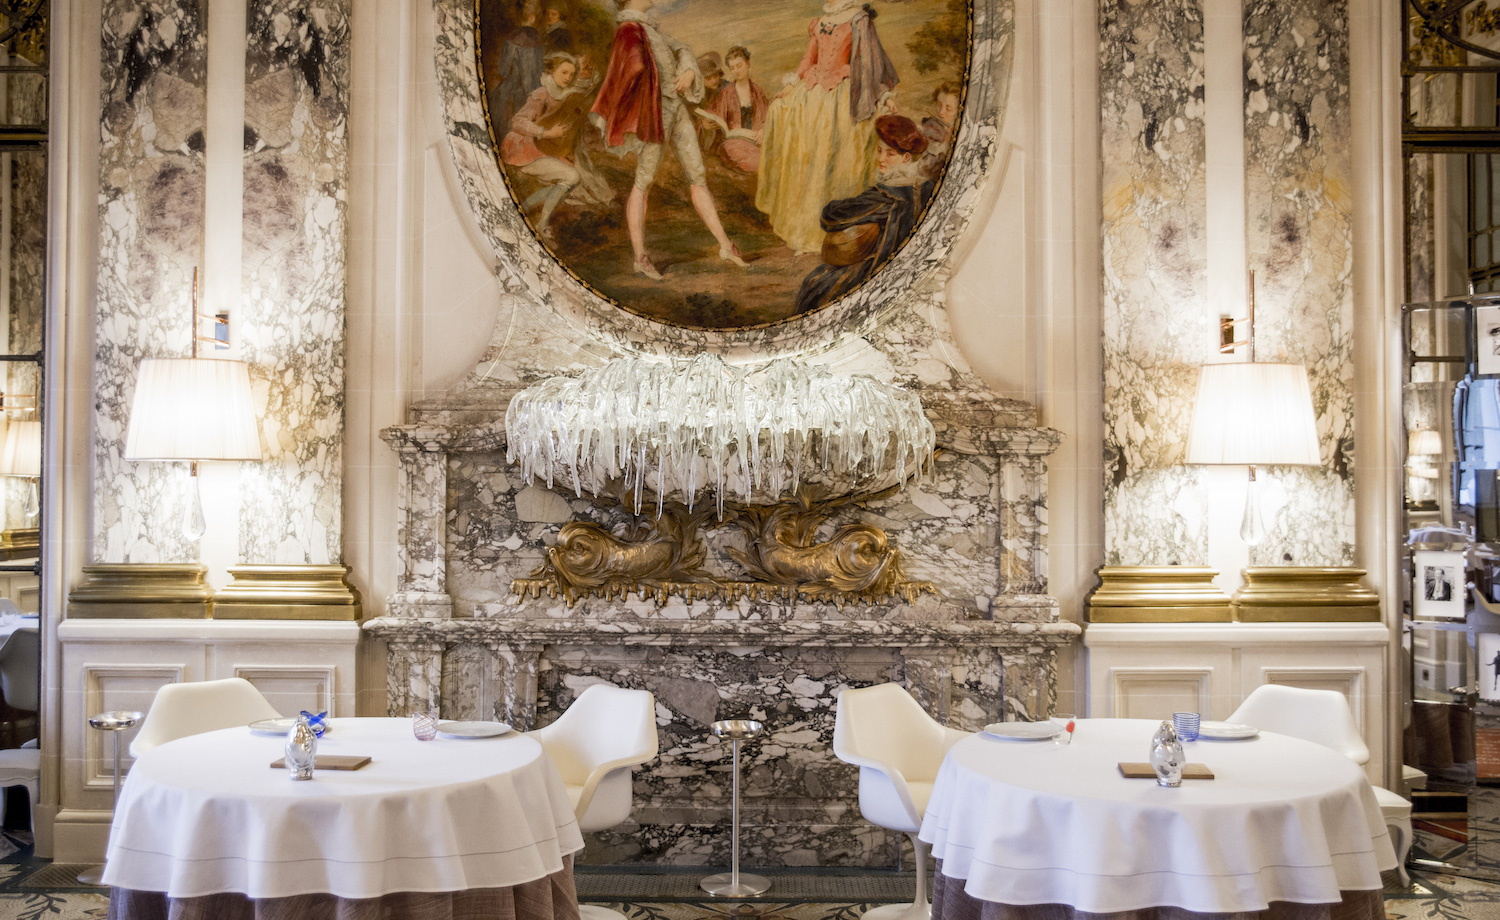 dining room chairs otter bath chair hôtel le meurice hotel review - paris, france   wallpaper*